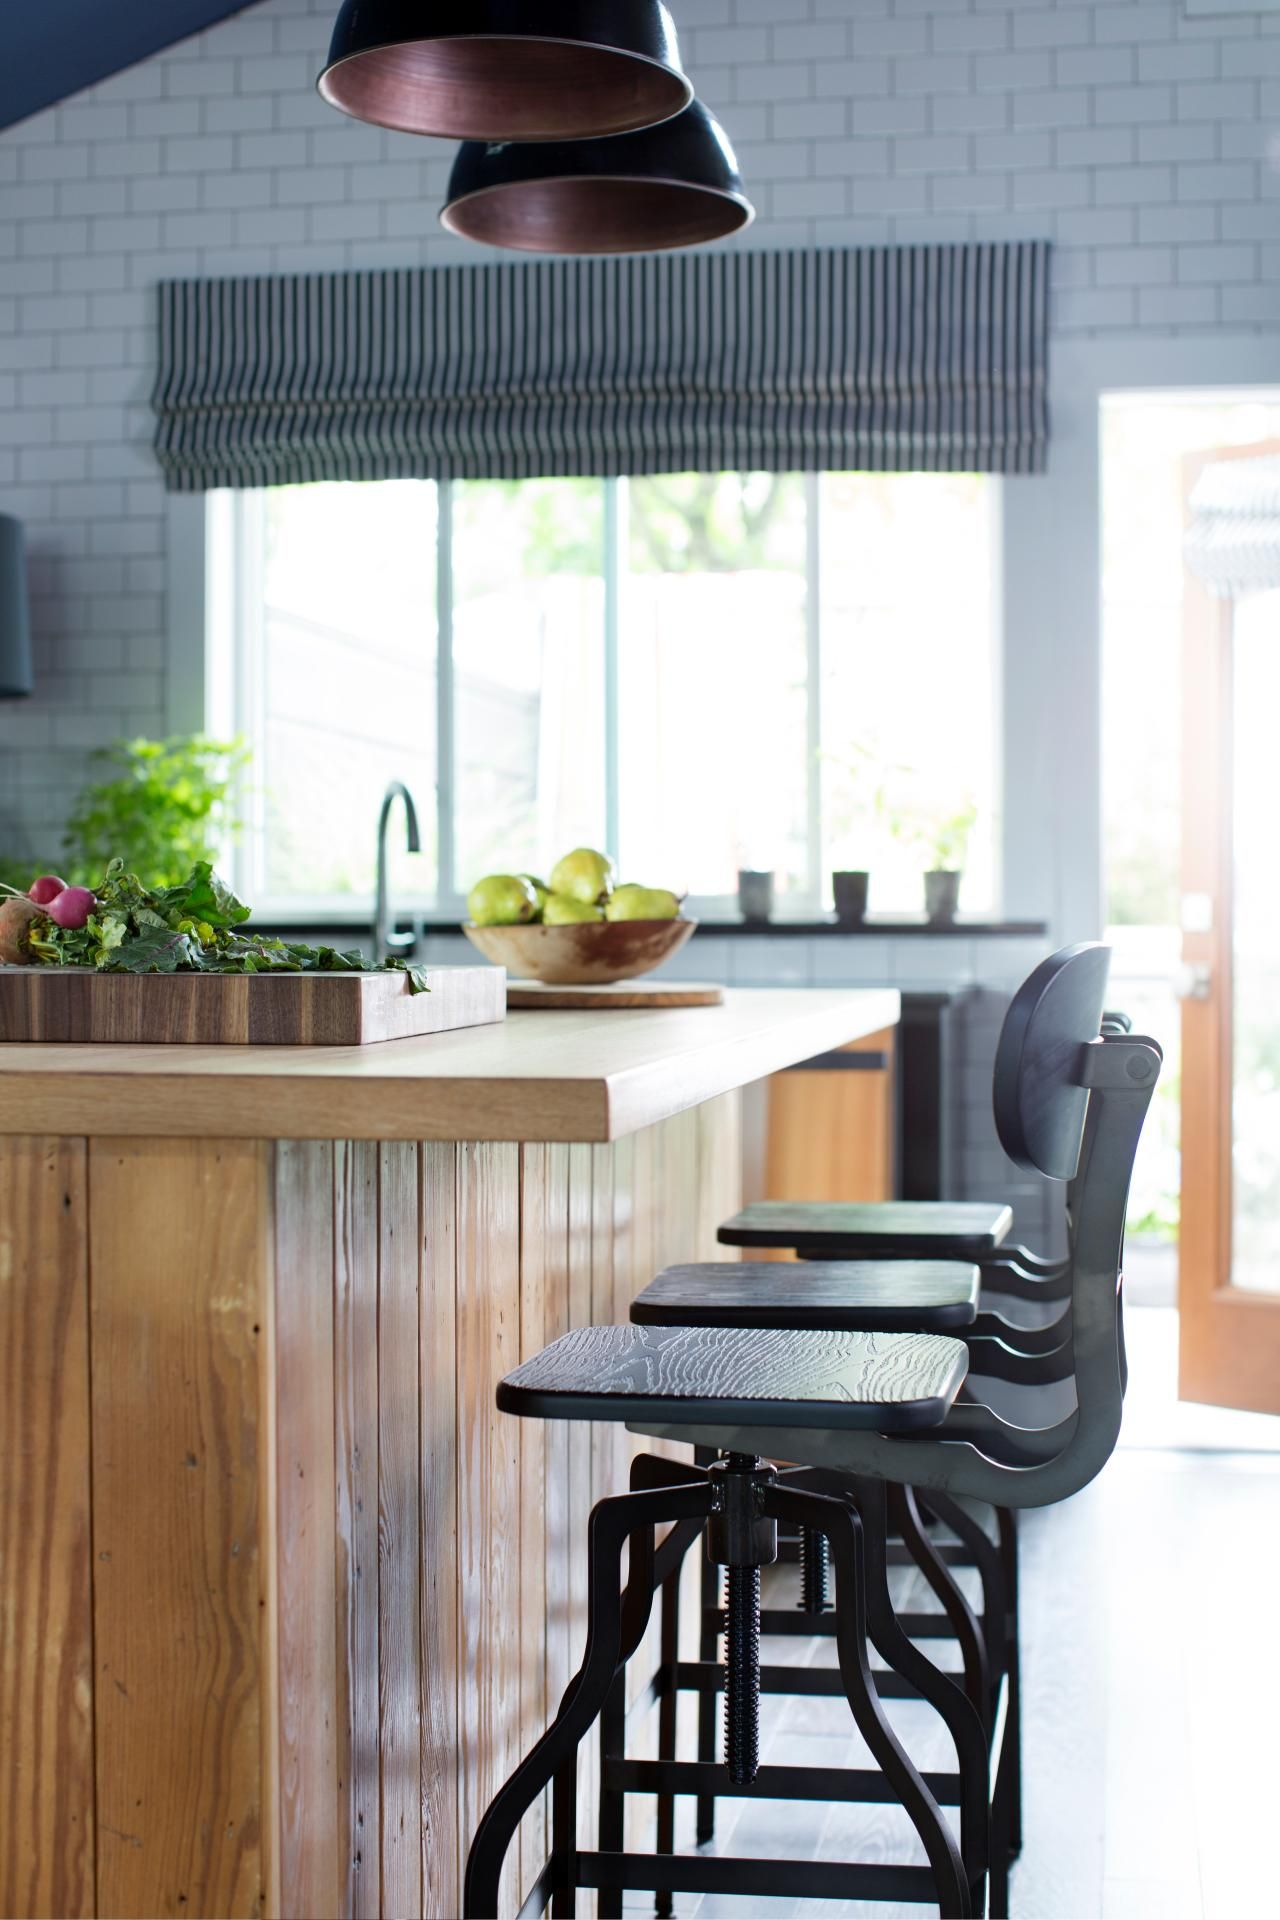 A custombuilt butcher block island is practical for meal